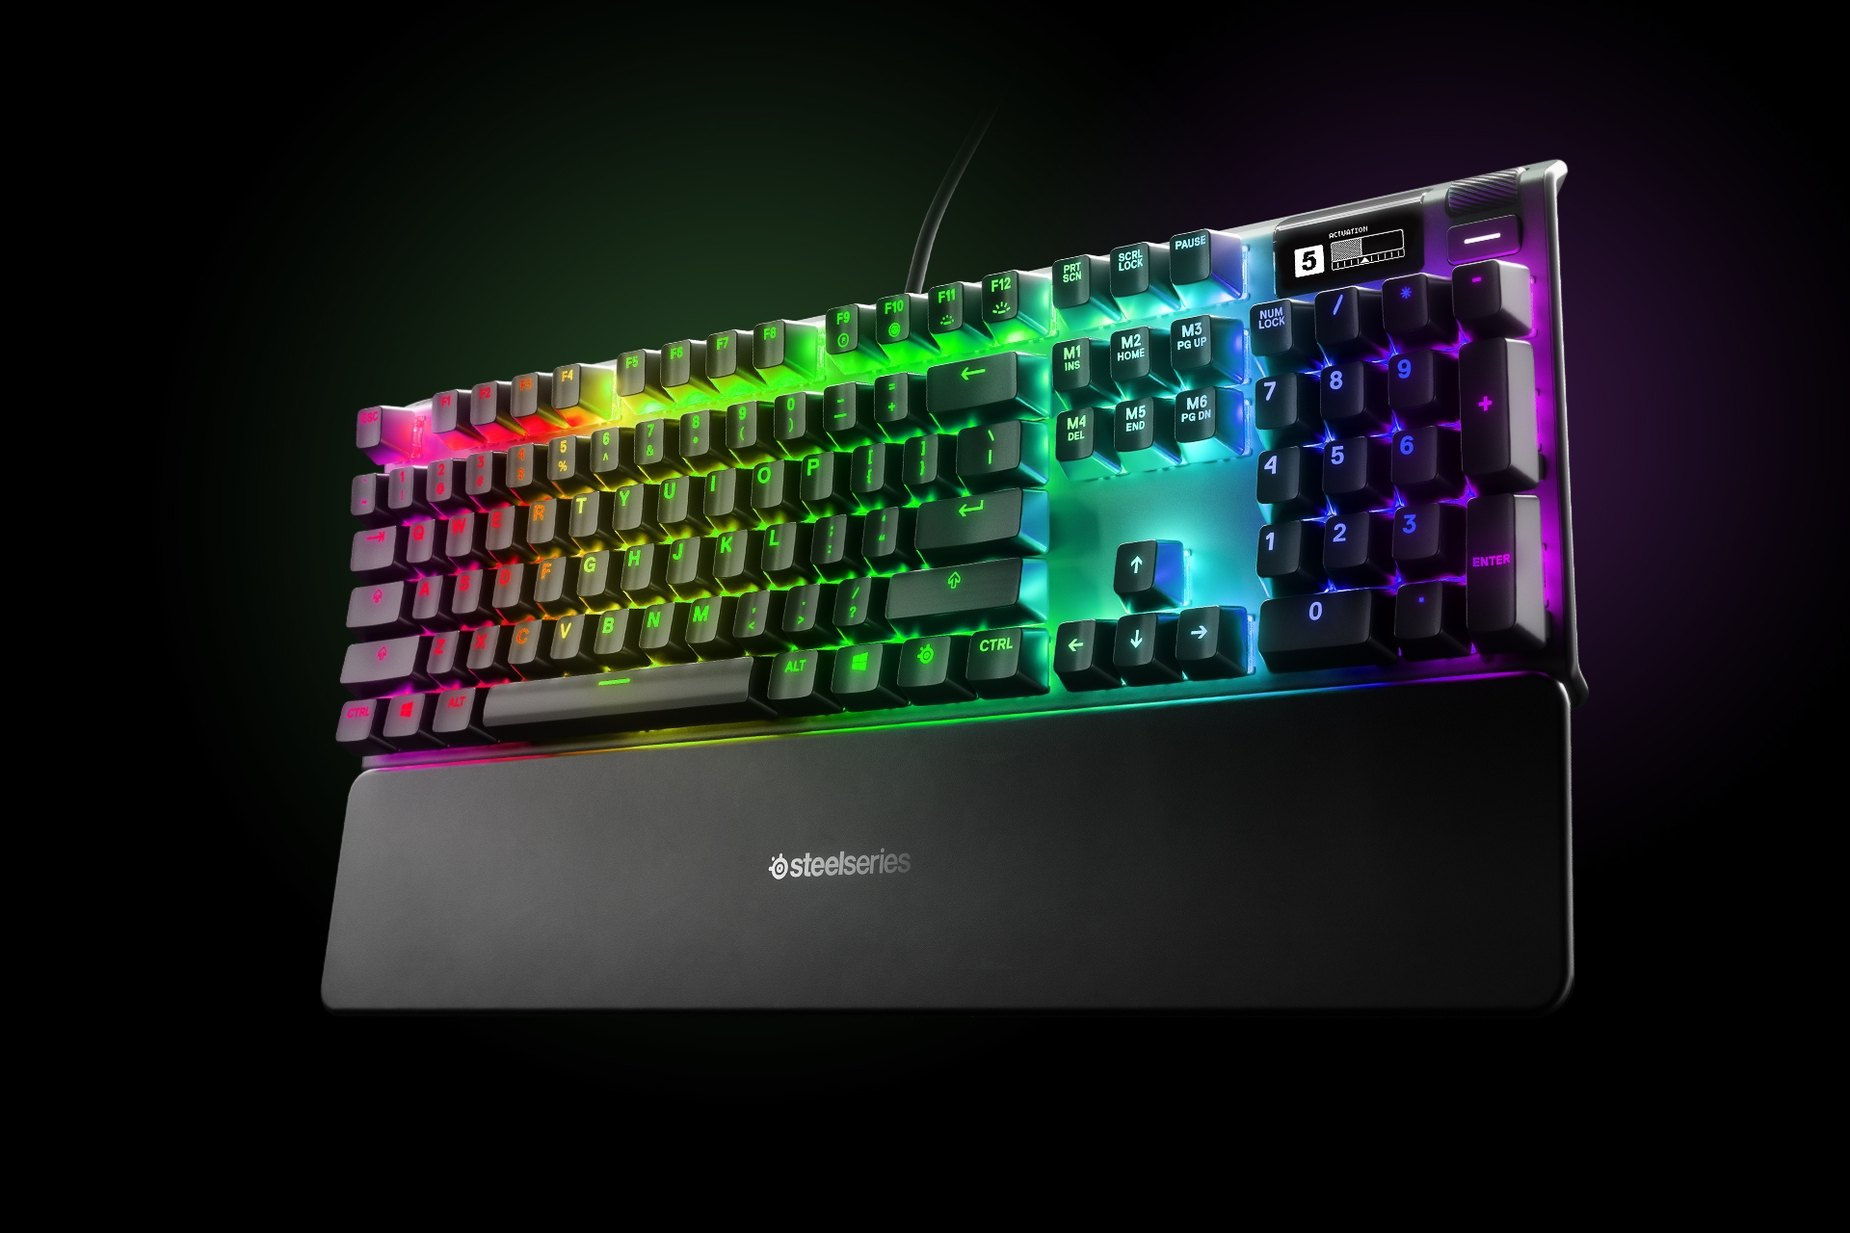 GB-Englisch - Apex Pro gaming keyboard with the illumination lit up on dark background, also shows the OLED screen and controls used to change settings, switch actuation, and adjust audio